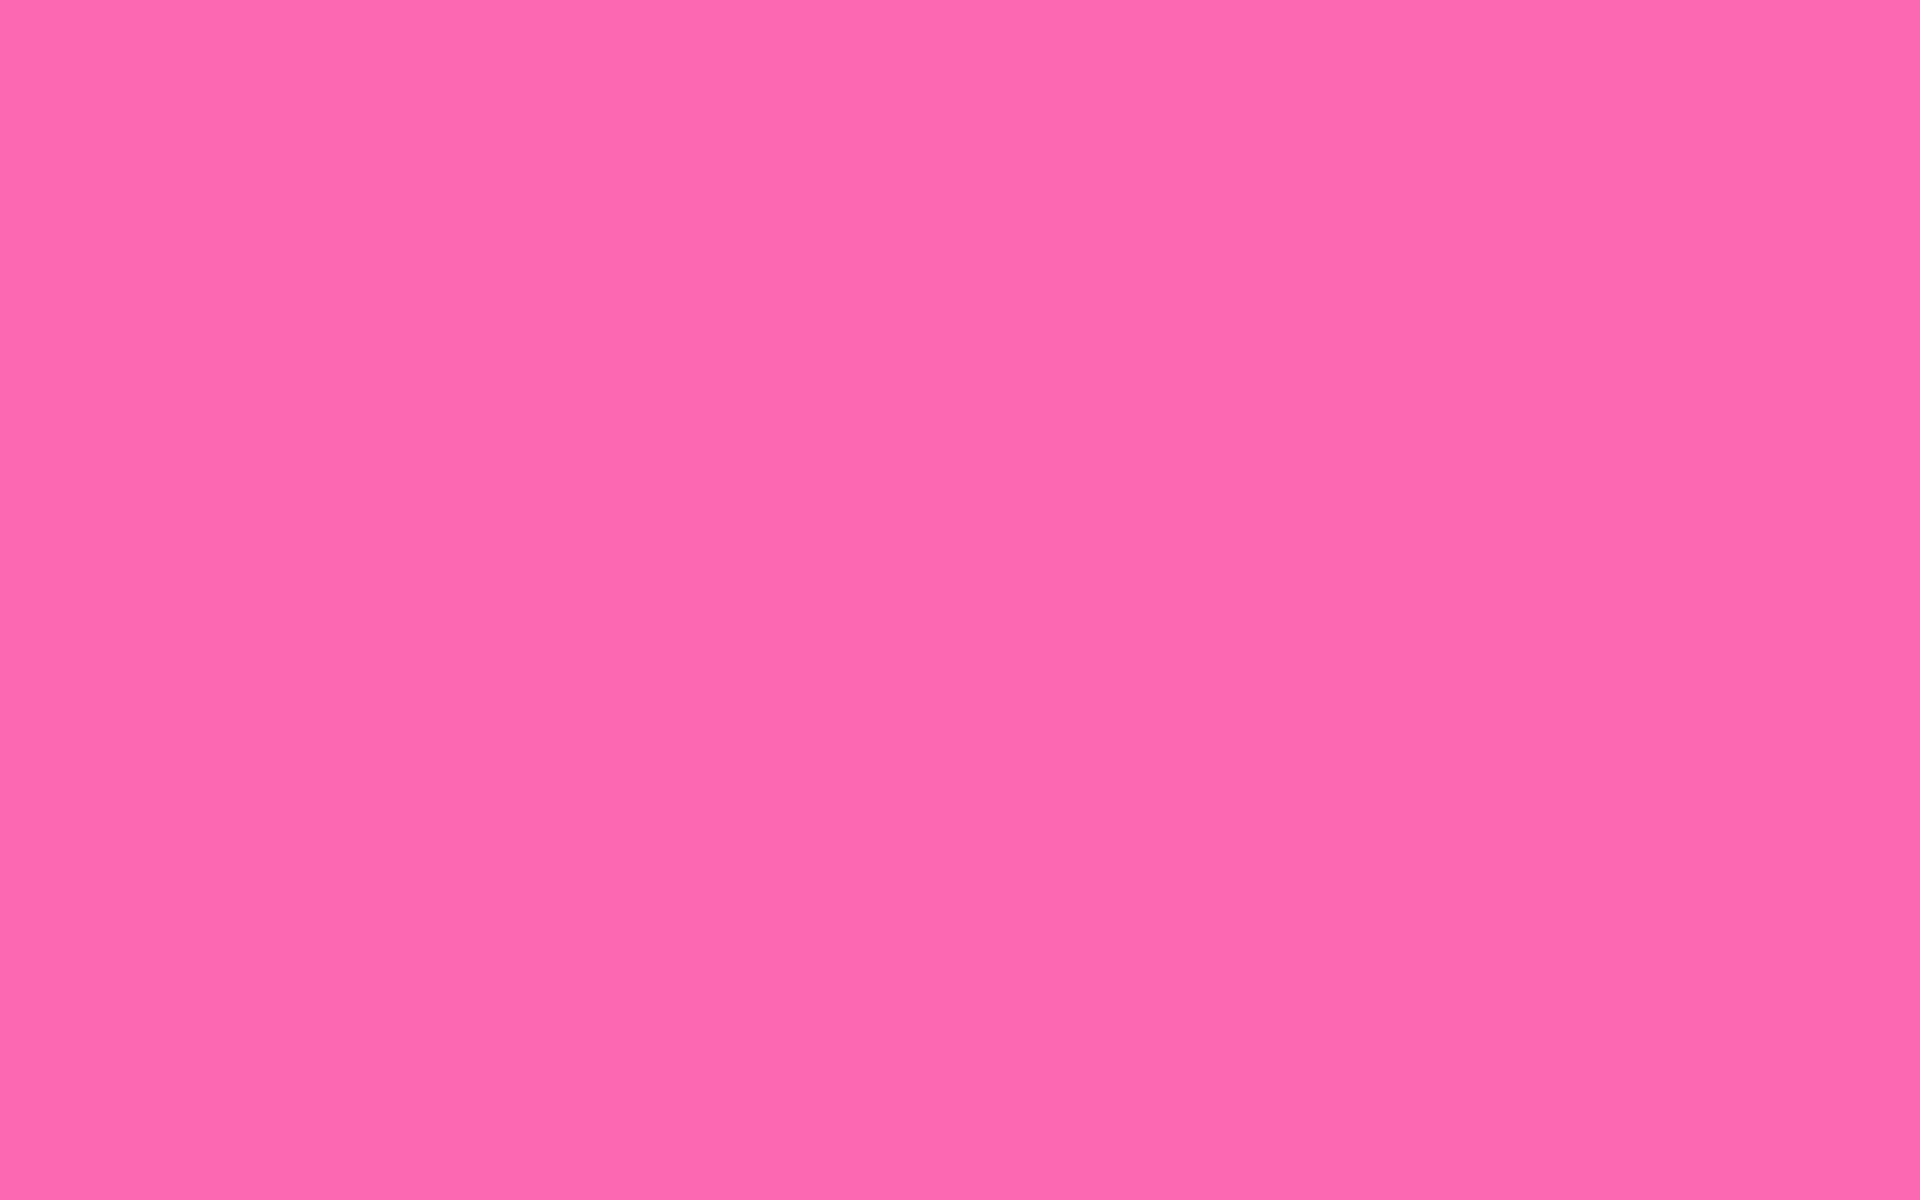 1920x1200 Hot Pink Solid Color Background